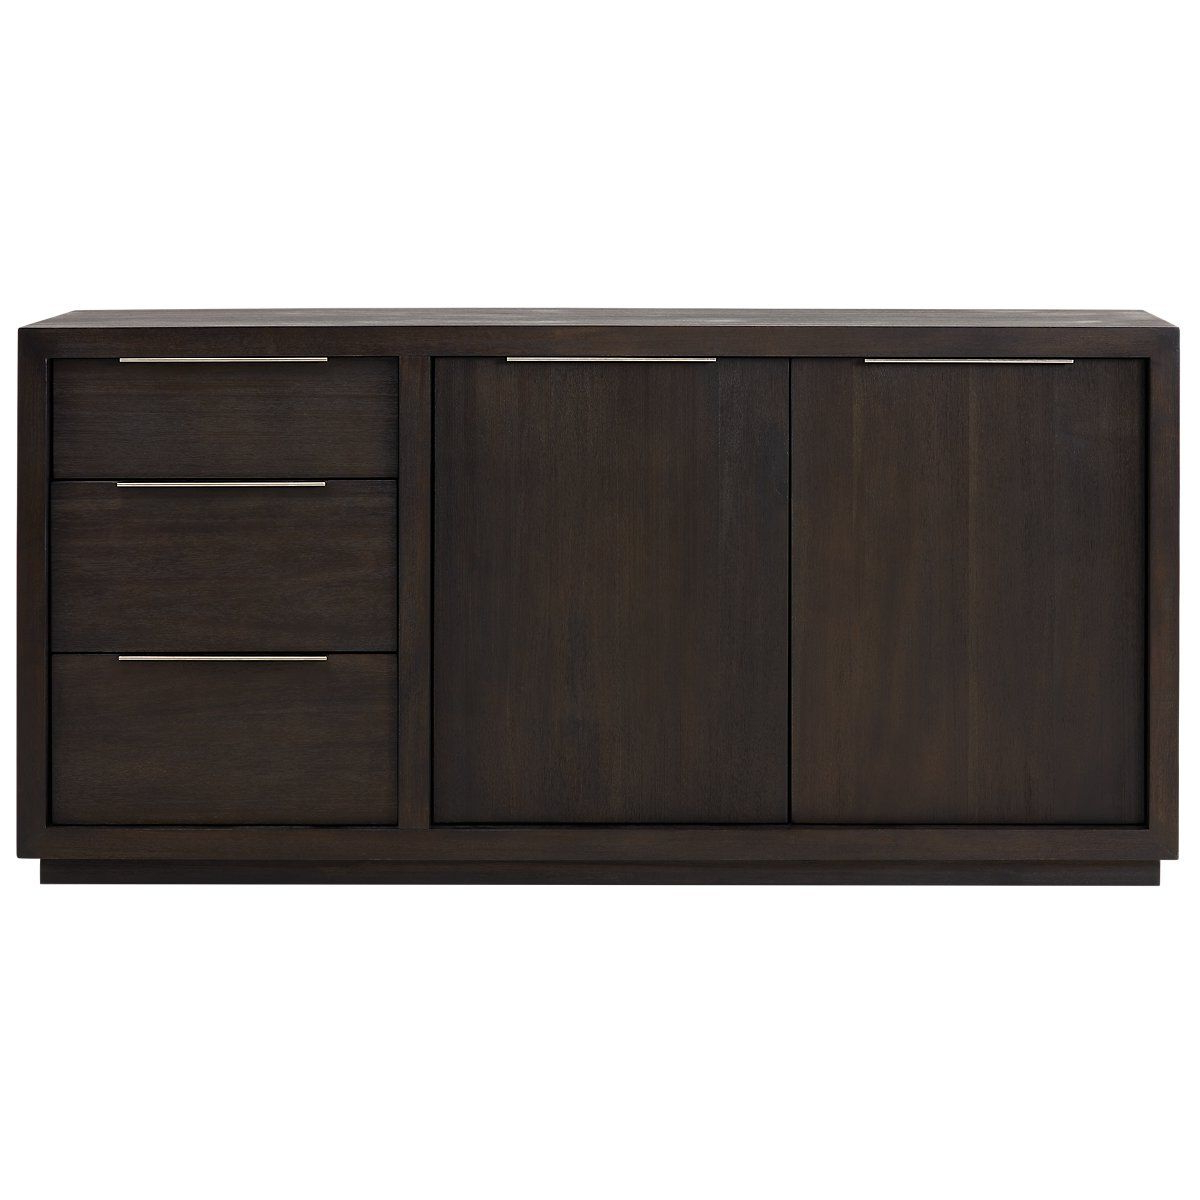 Candide Wood Credenzas With Regard To Preferred Candide Dark Gray Wood Credenza (View 11 of 20)